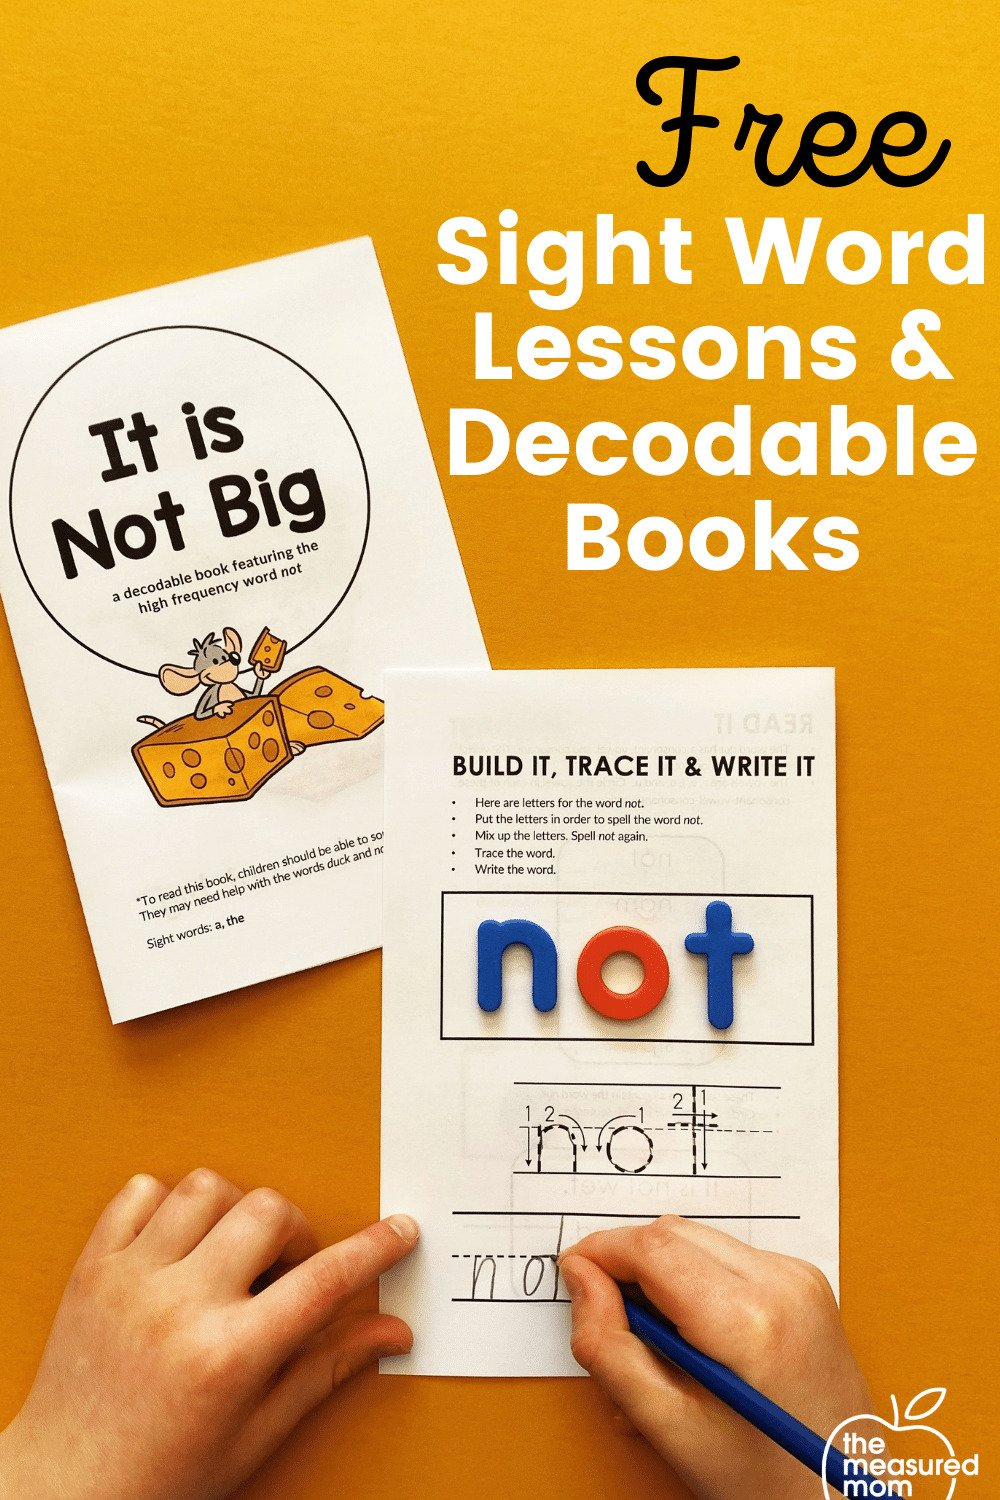 decodable sight word books and lessons featured on an orange background